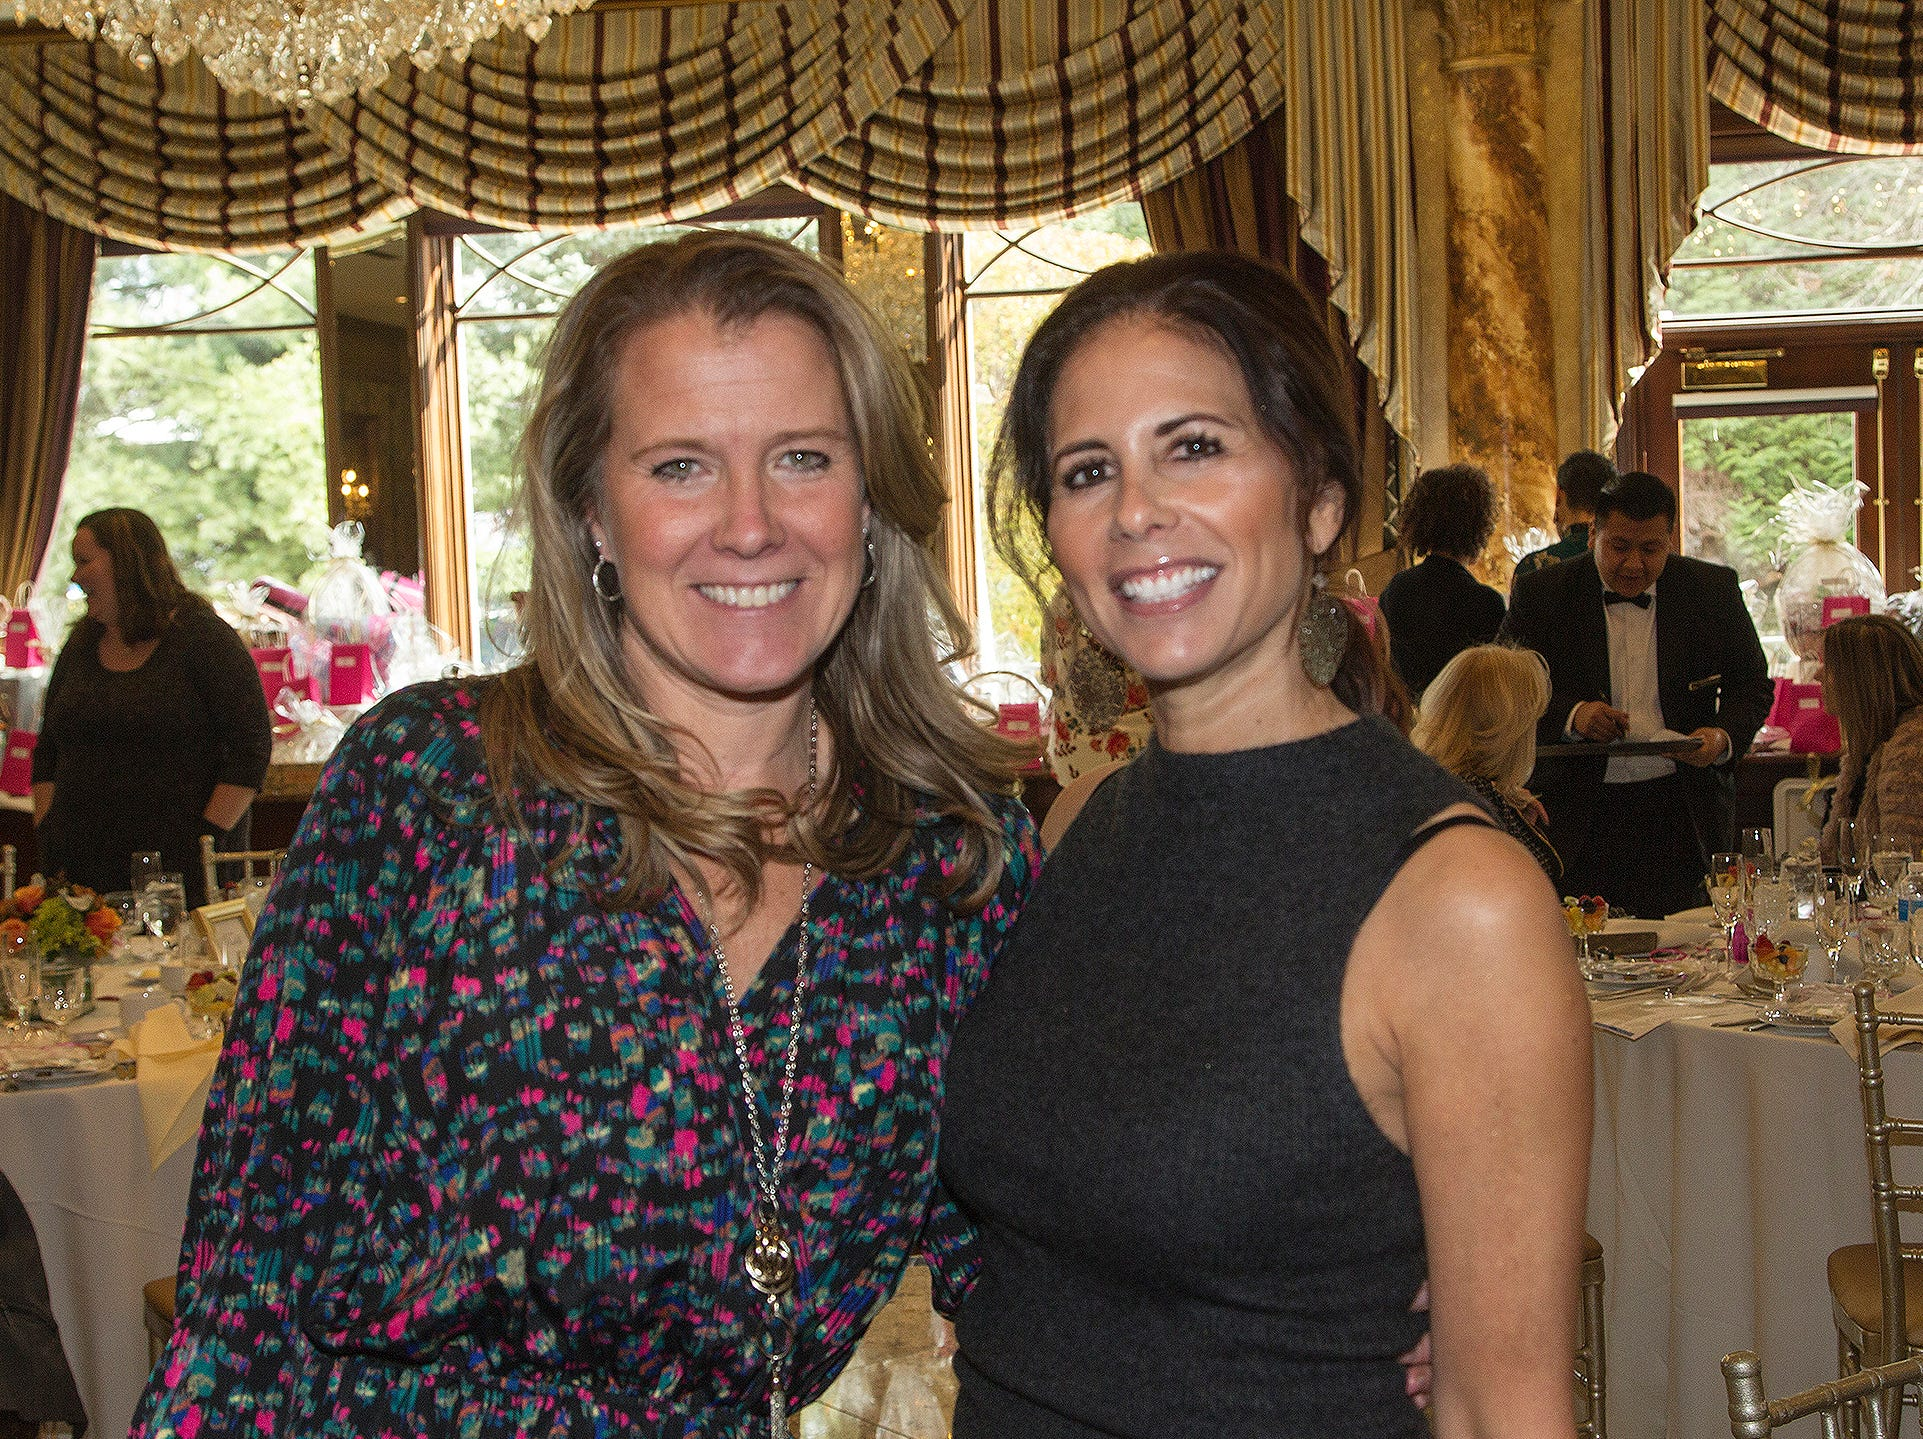 Laura McSpirit, Elyse Zitomer. Josephine's Garden, part of Hackensack Meridian Health, held its luncheon gala at Season's in Washington Township. The mission of this organization is to provide a place of respite, joy and hope to children battling cancer. 11/14/2018